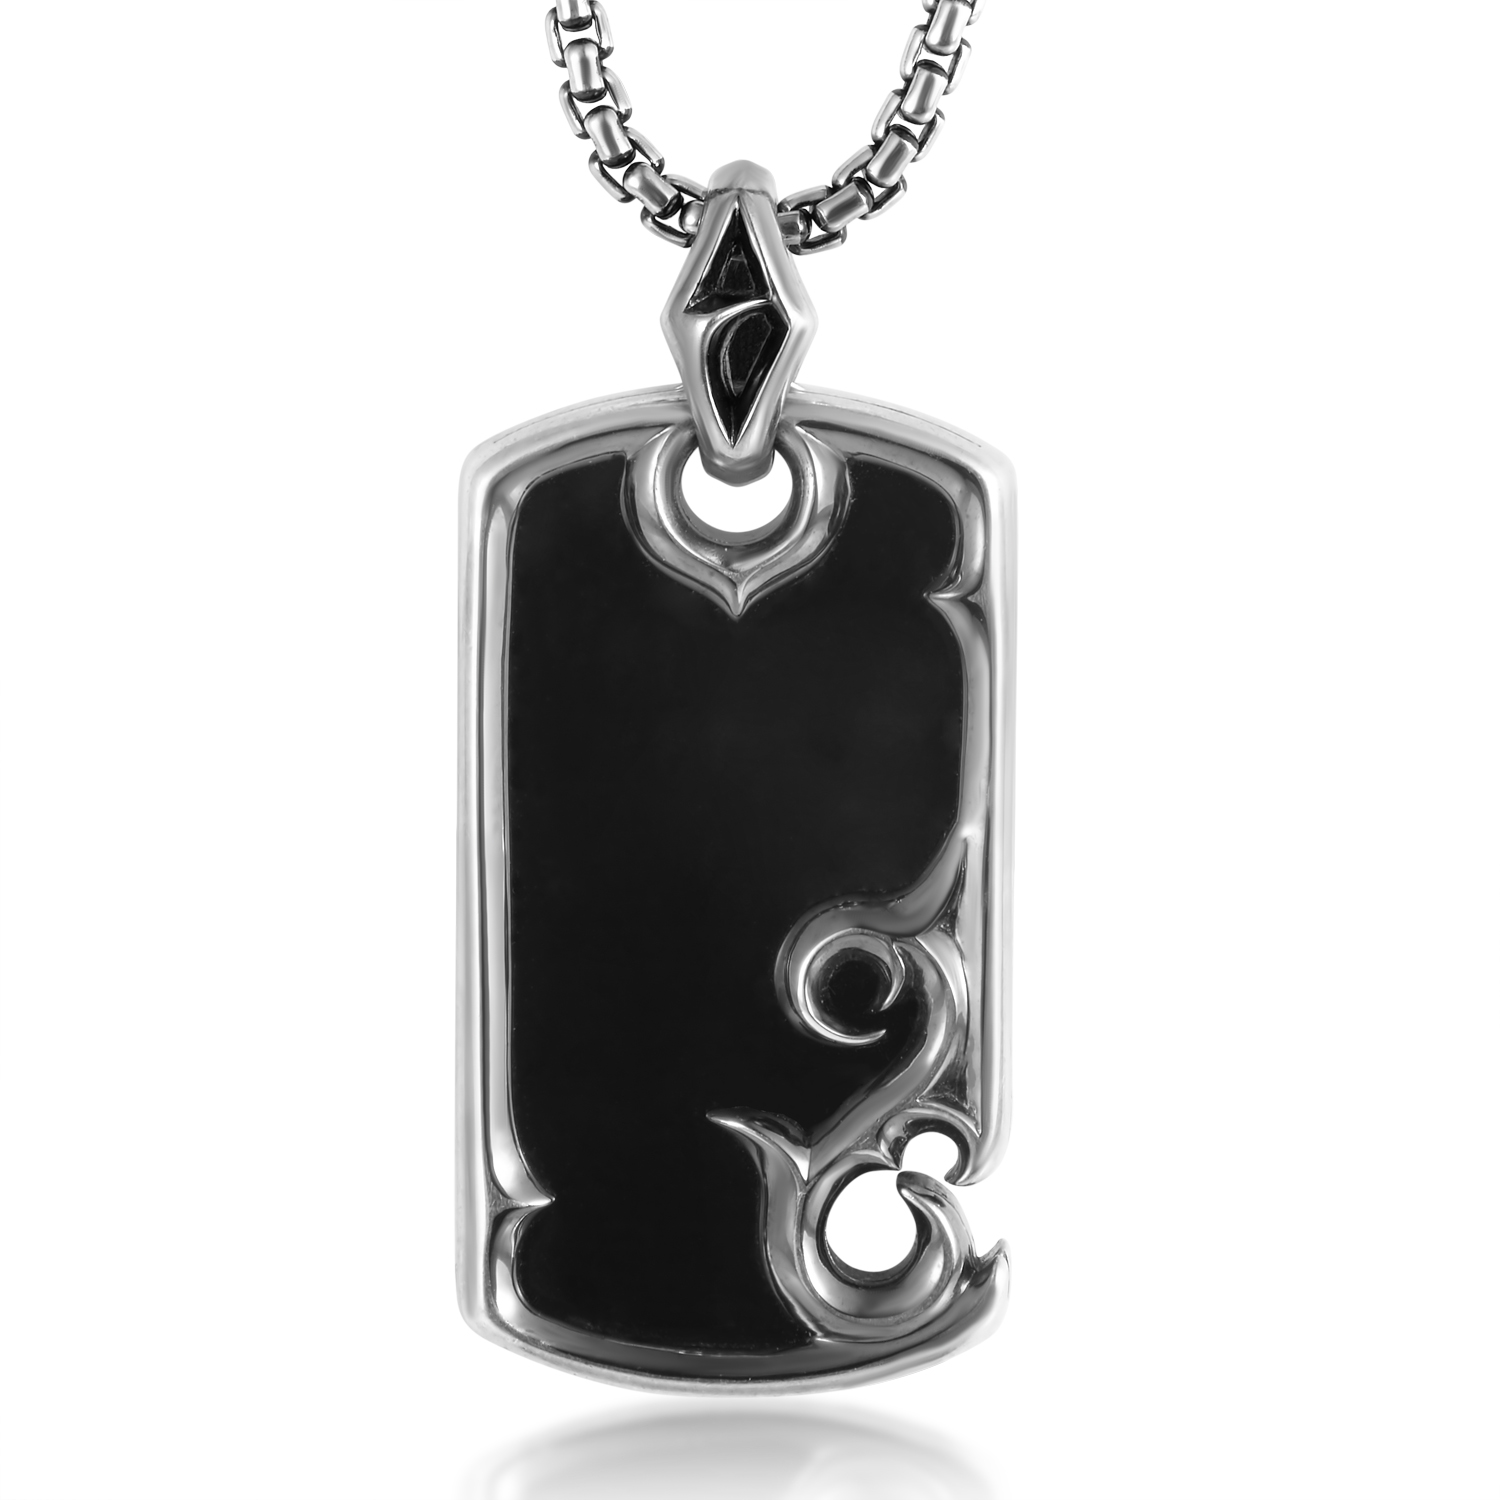 Thorn Sterling Silver Onyx Dog Tag Pendant Necklace